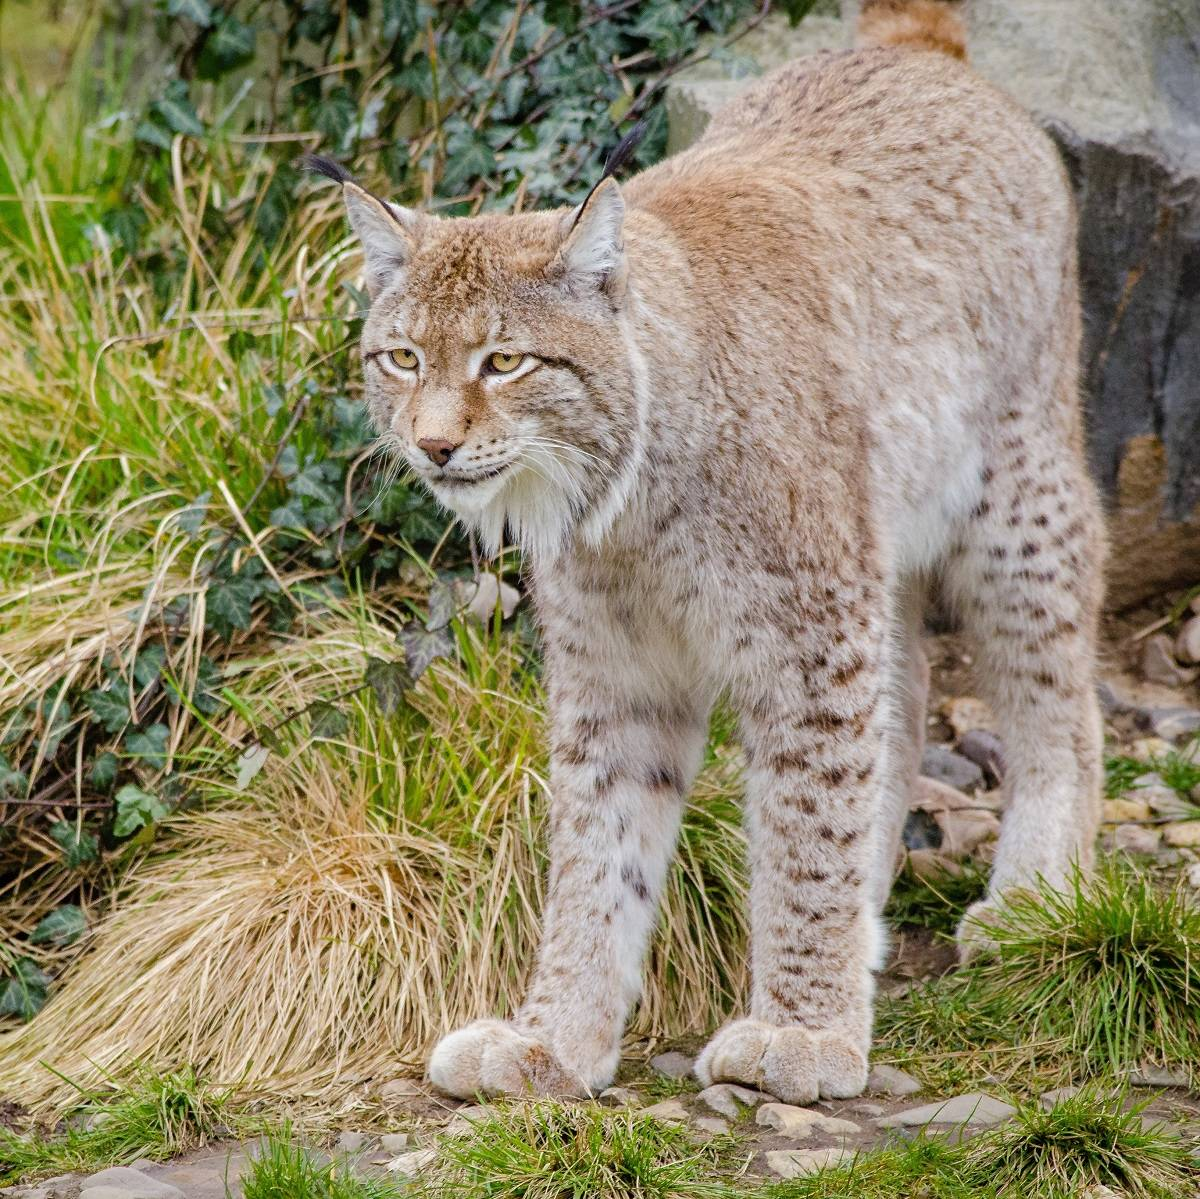 A lynx standing in front of a rock and long grass